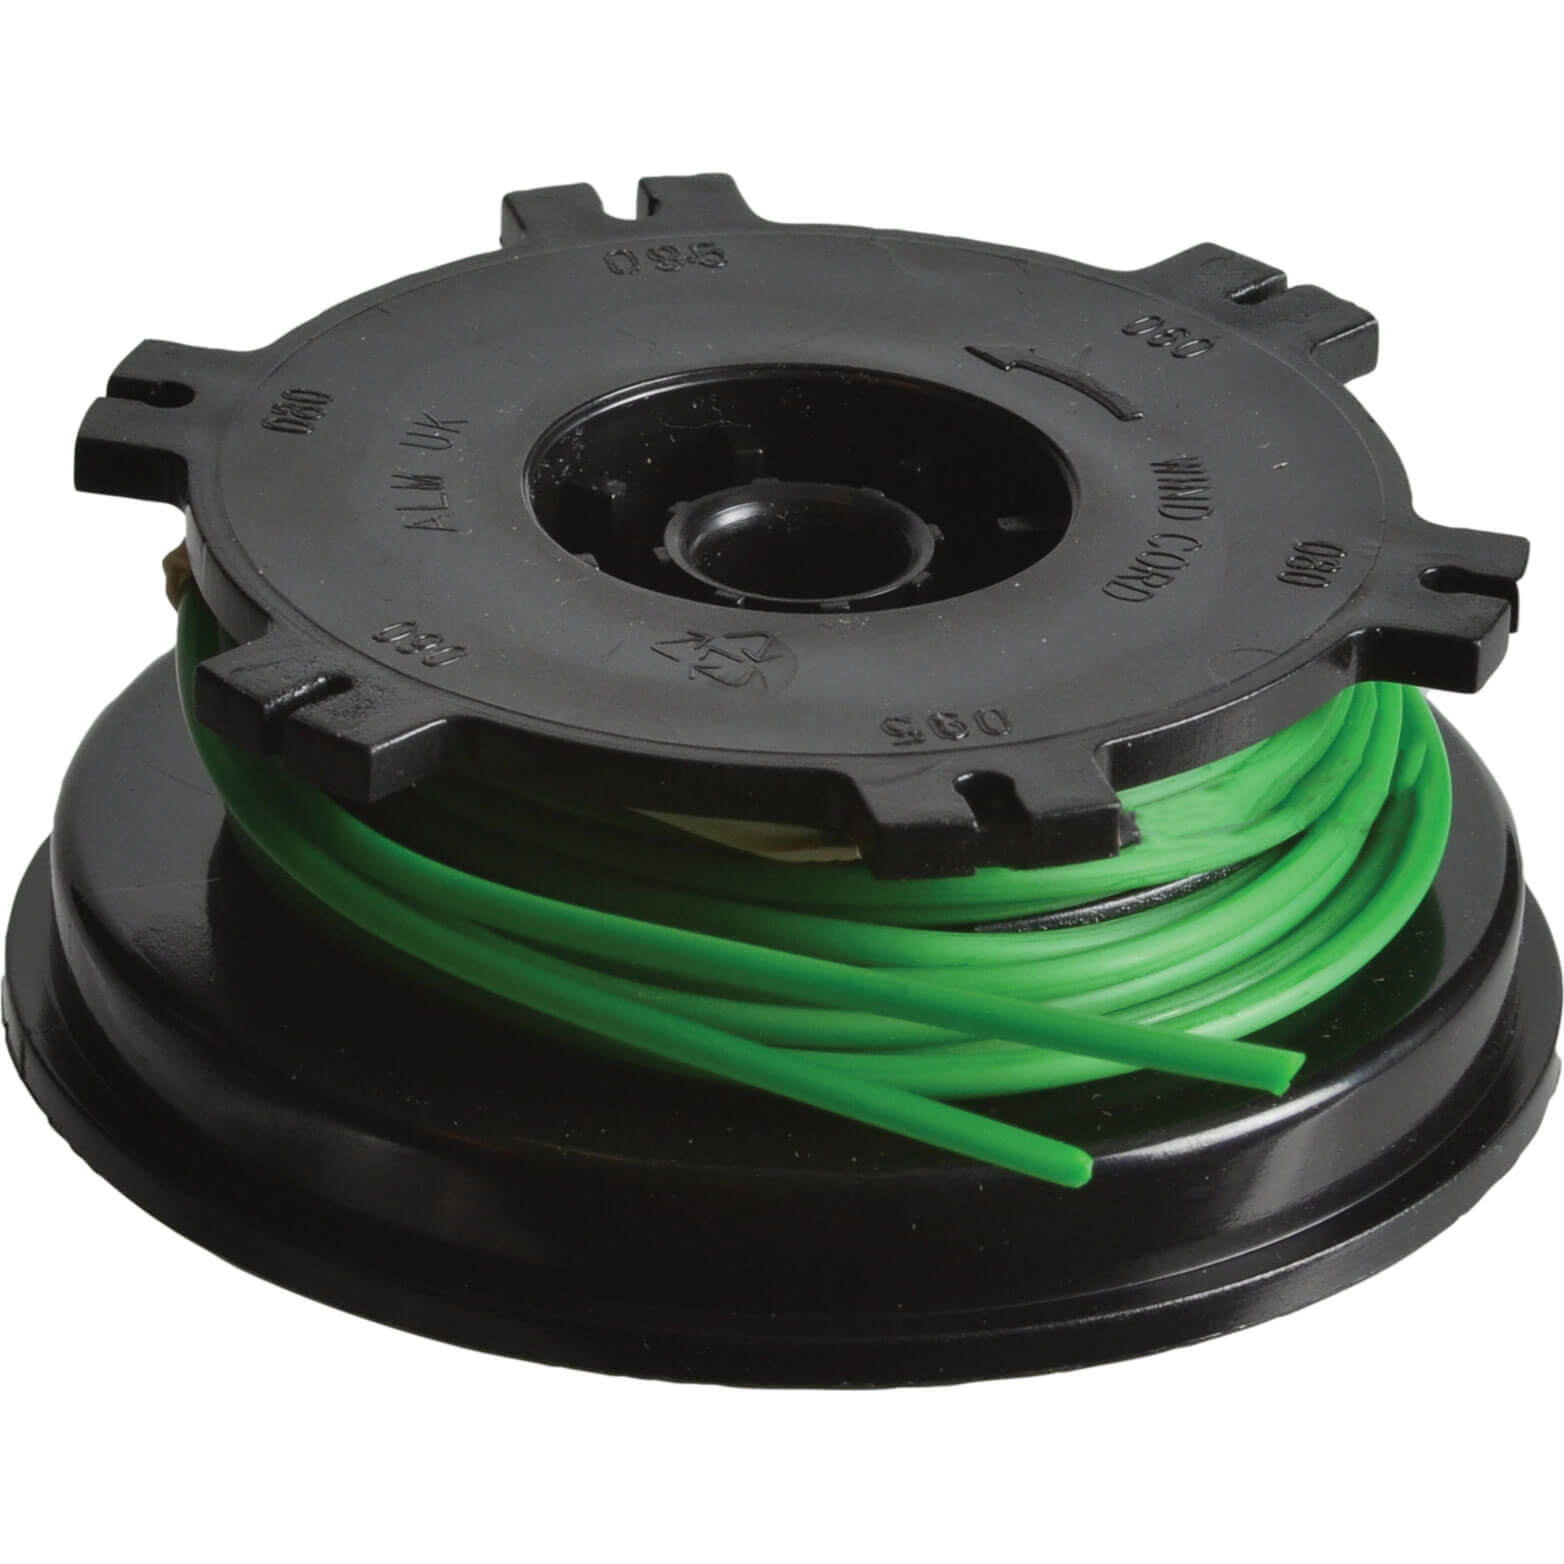 ALM Manufacturing HL001 Spool and Line to Fit Homelite Petrol Trimmers